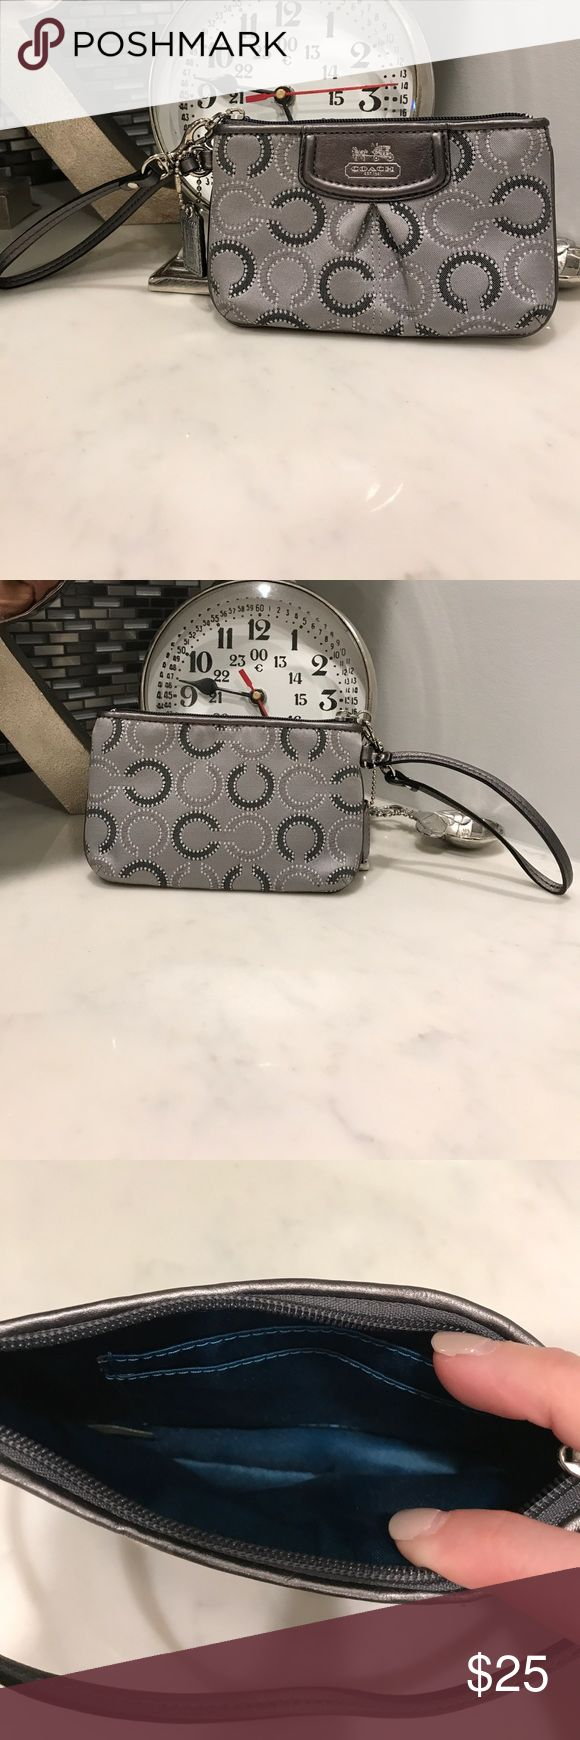 Small Authentic Coach wristlet Authentic Coach wristlet. Small, grey and great for throwing your cash/credit card and photo ID in for a night on the town! Coach Bags Clutches & Wristlets